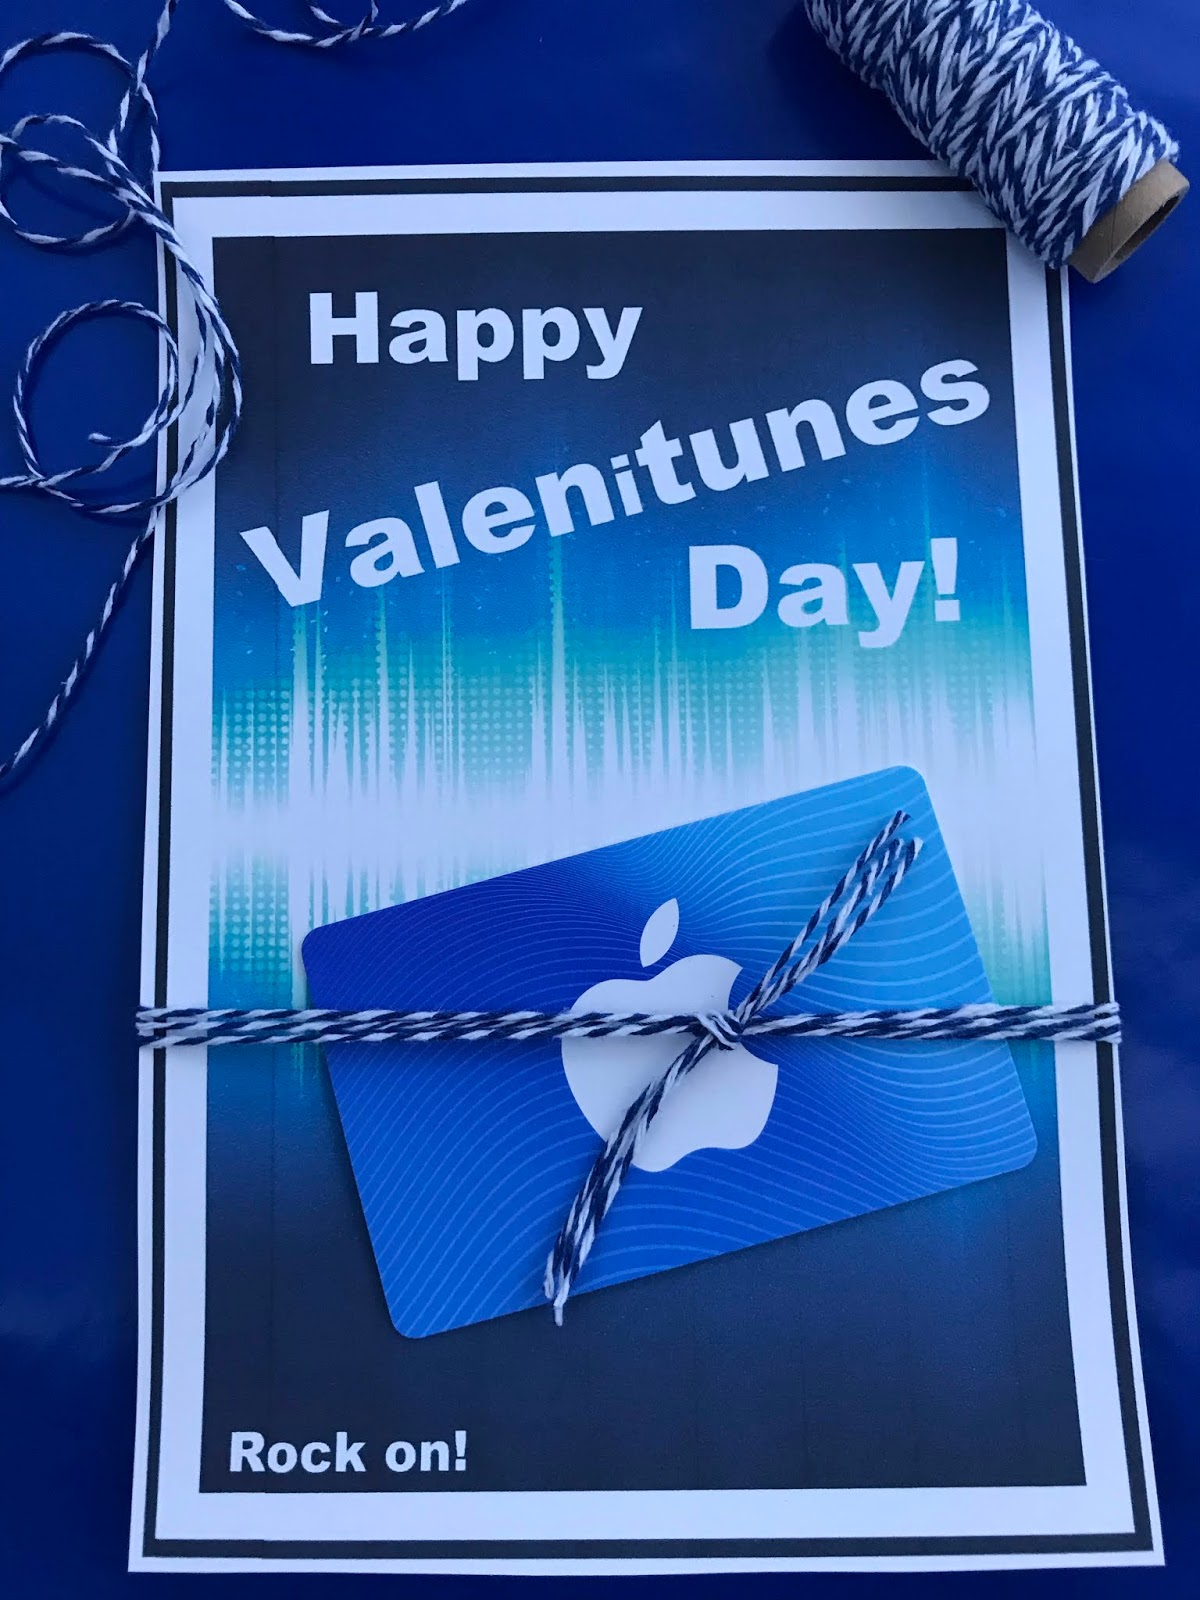 image about Printable Itunes Gift Card titled mice paige weblogs: Valentine iTunes Reward Card Printables